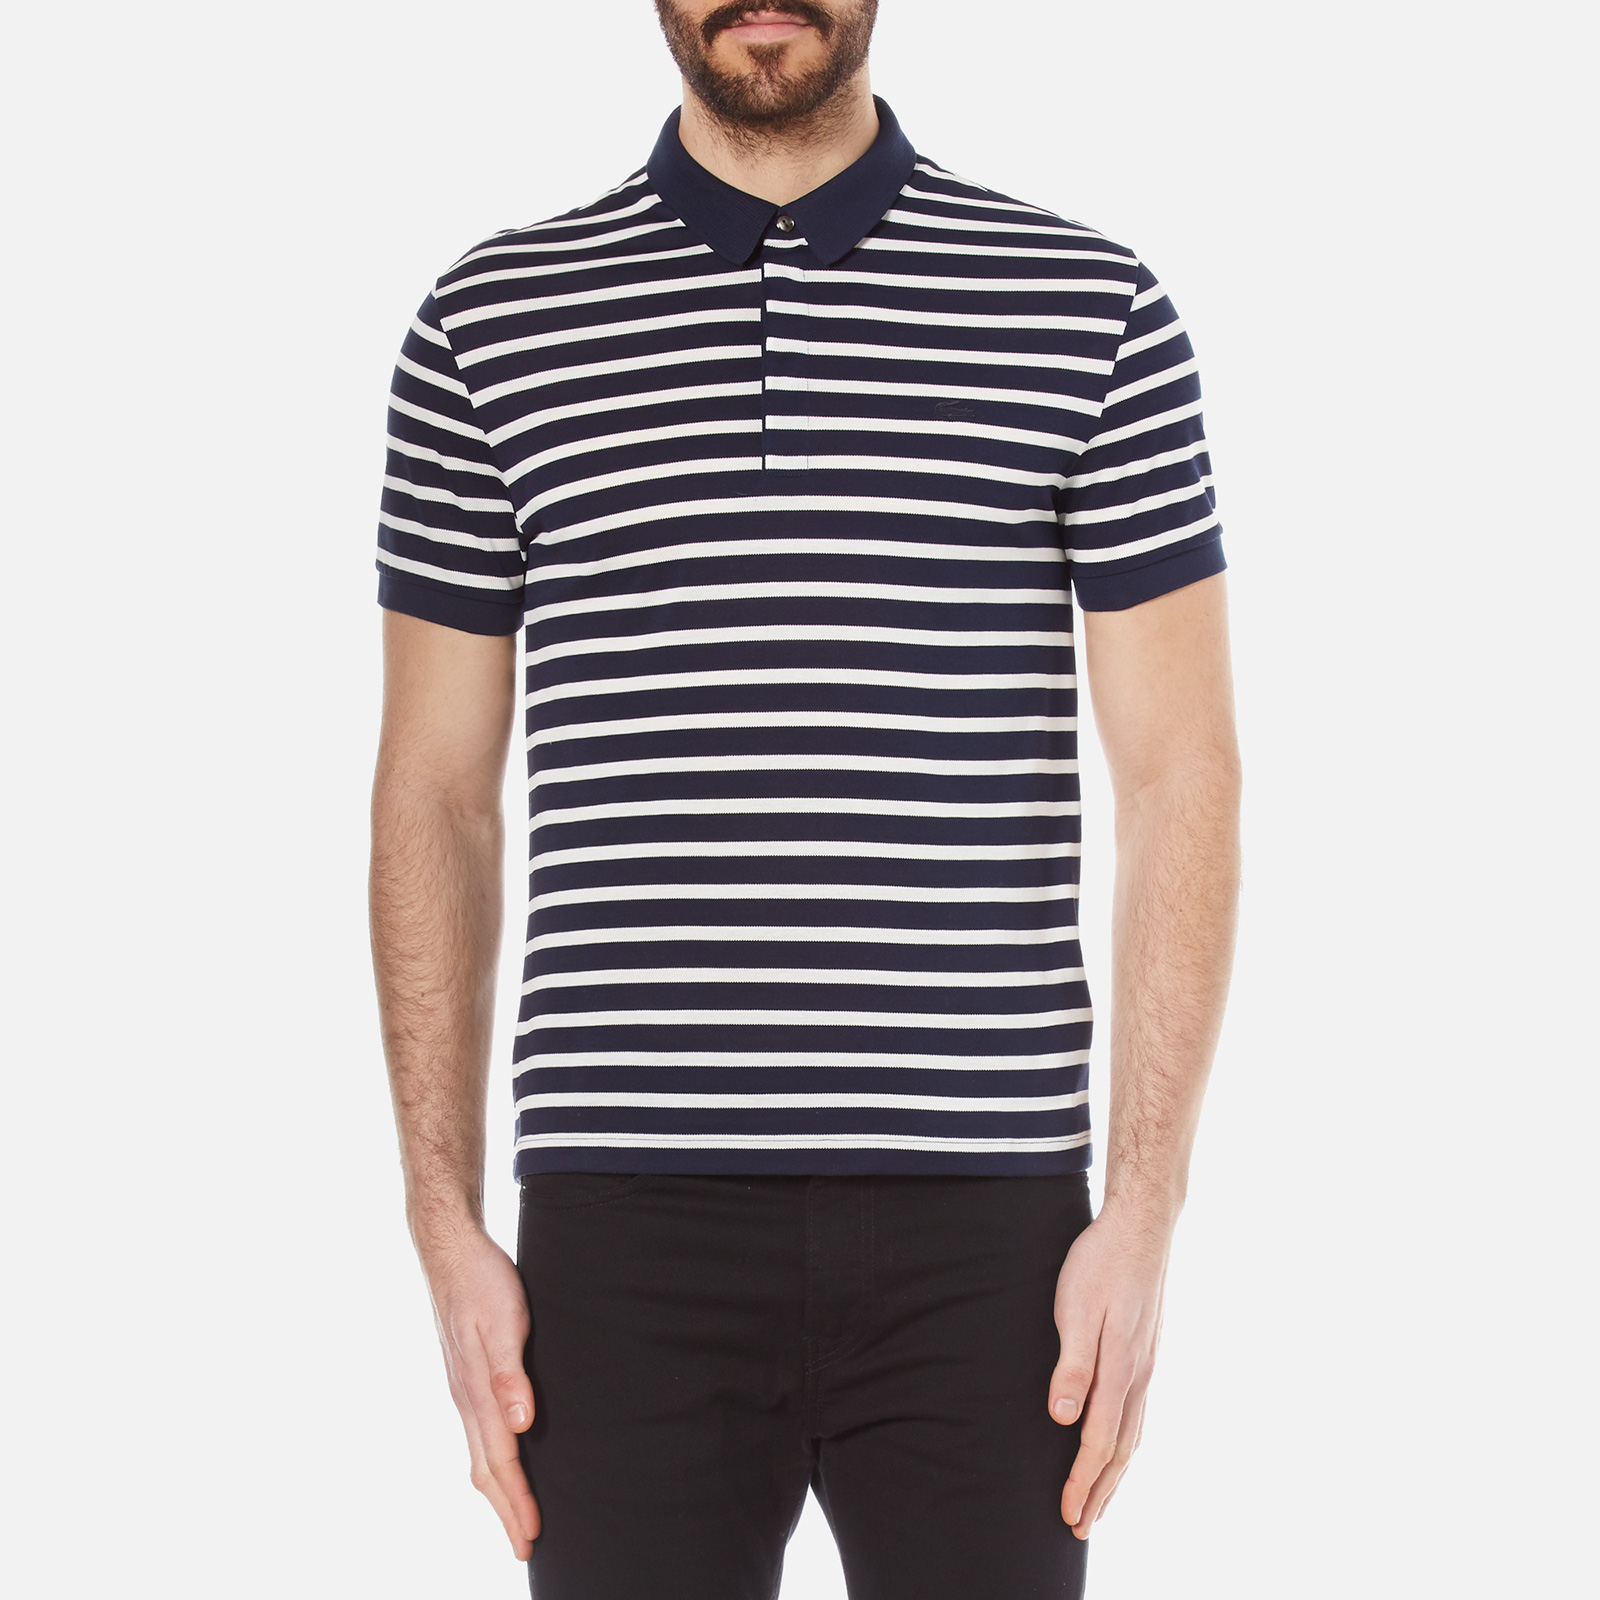 42252df76ab2 Lacoste Men s Striped Mini Pique Polo Shirt - Navy Blue Flour - Free UK  Delivery over £50